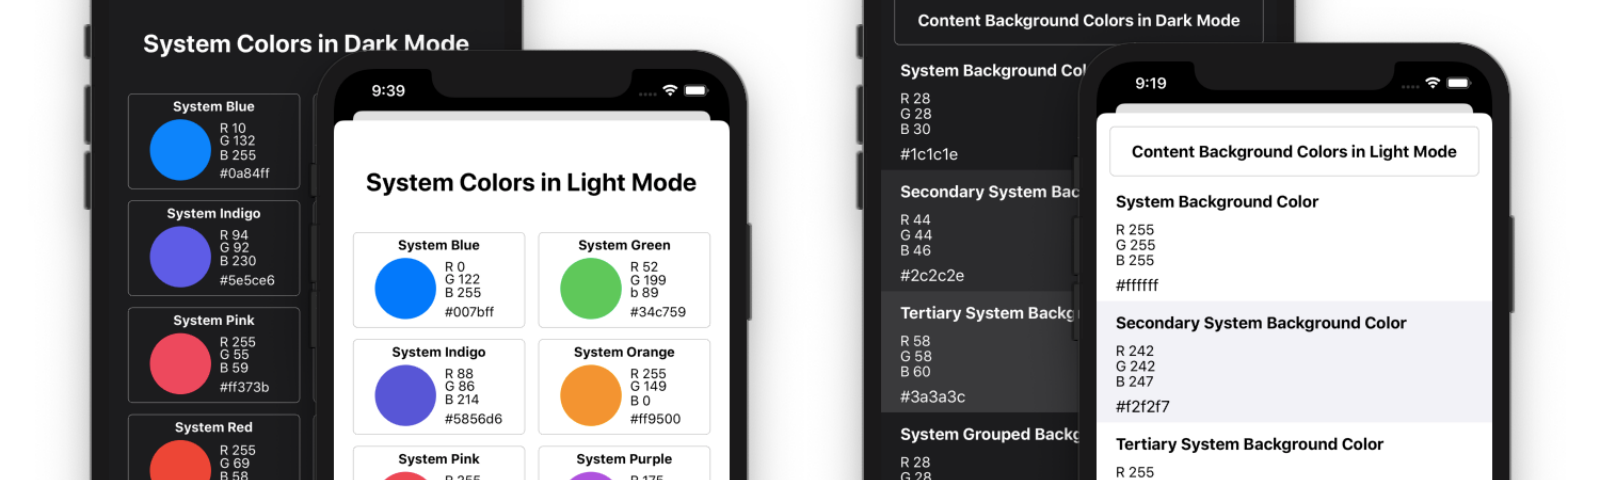 iOS system colors and content background colors in light mode and dark mode